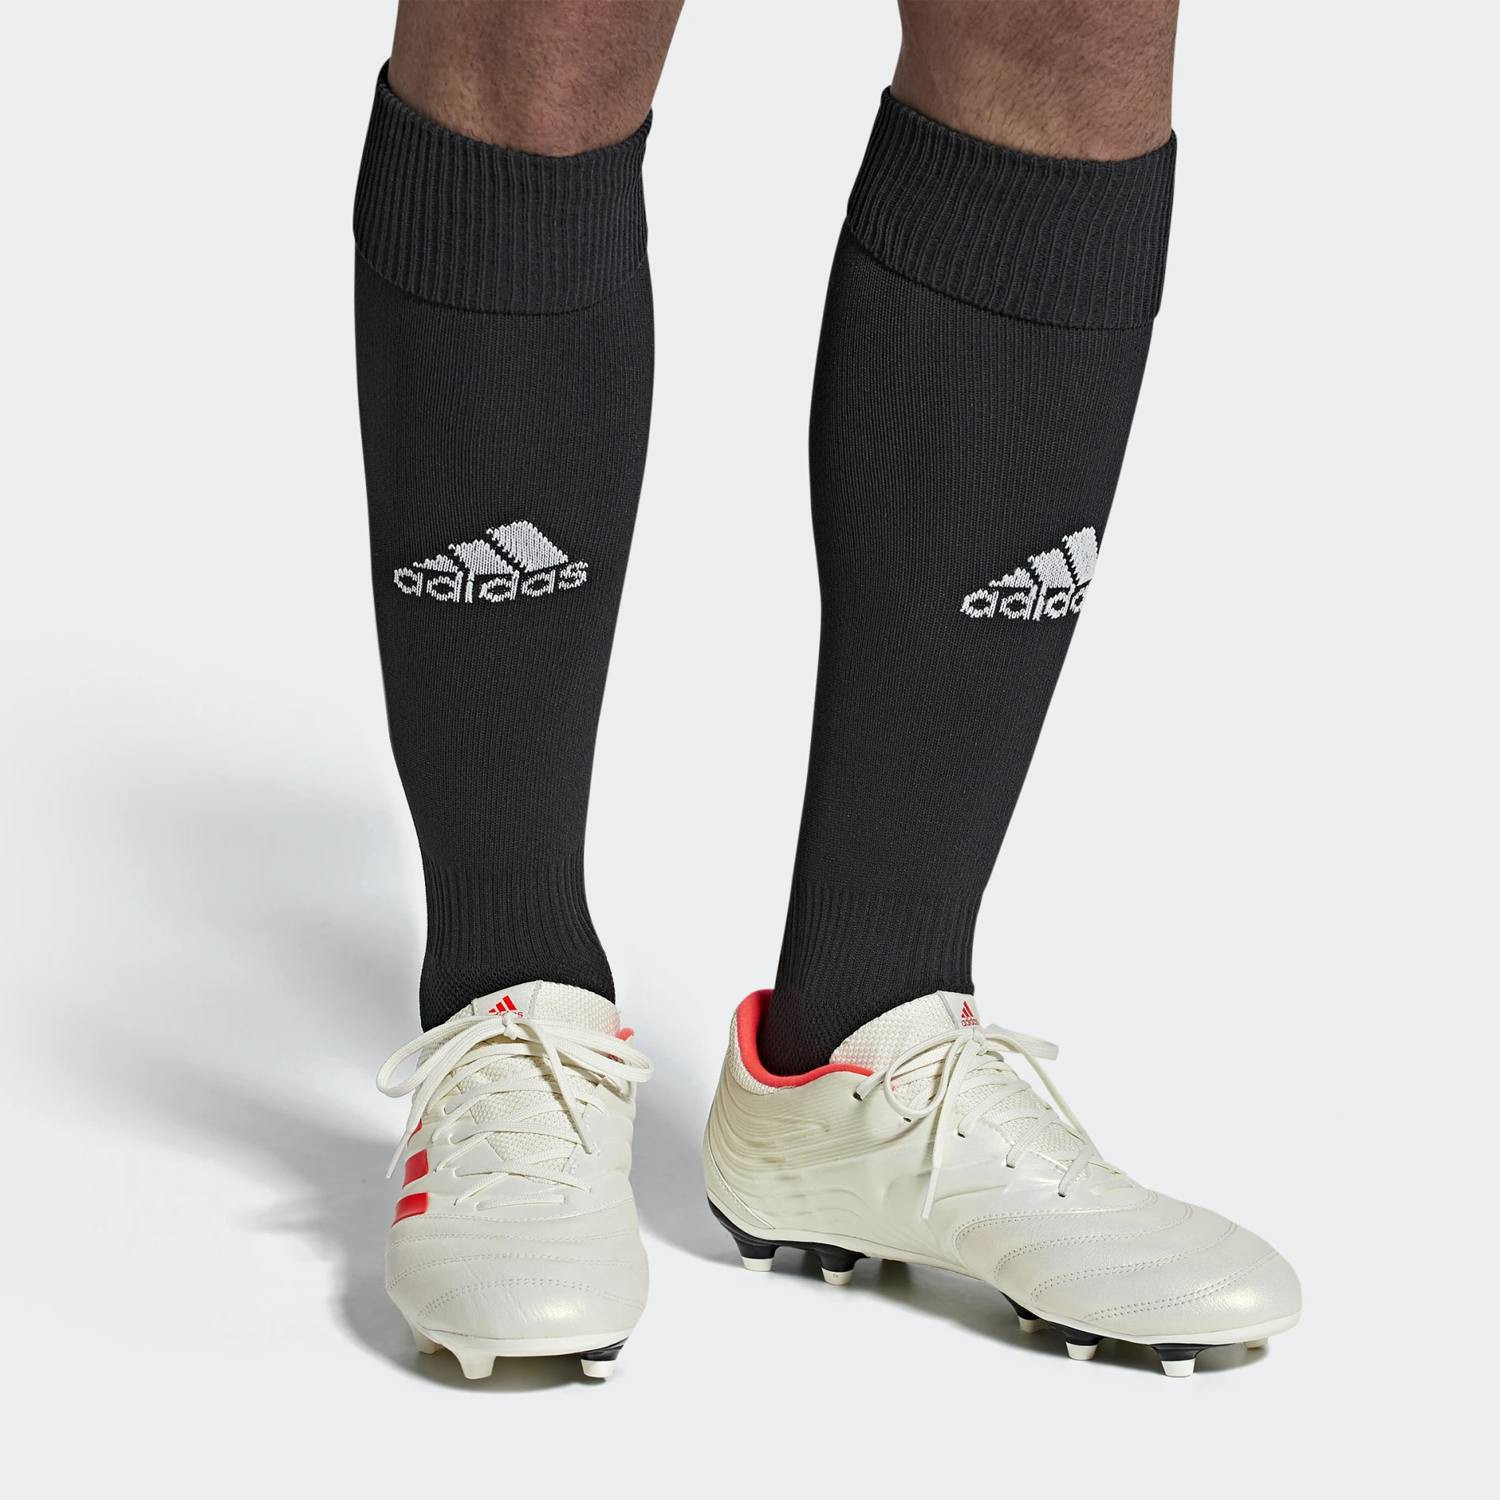 adidas Copa 19.3 Firm Ground Cleats 'Exhibit Pack' (9000023103_37063)